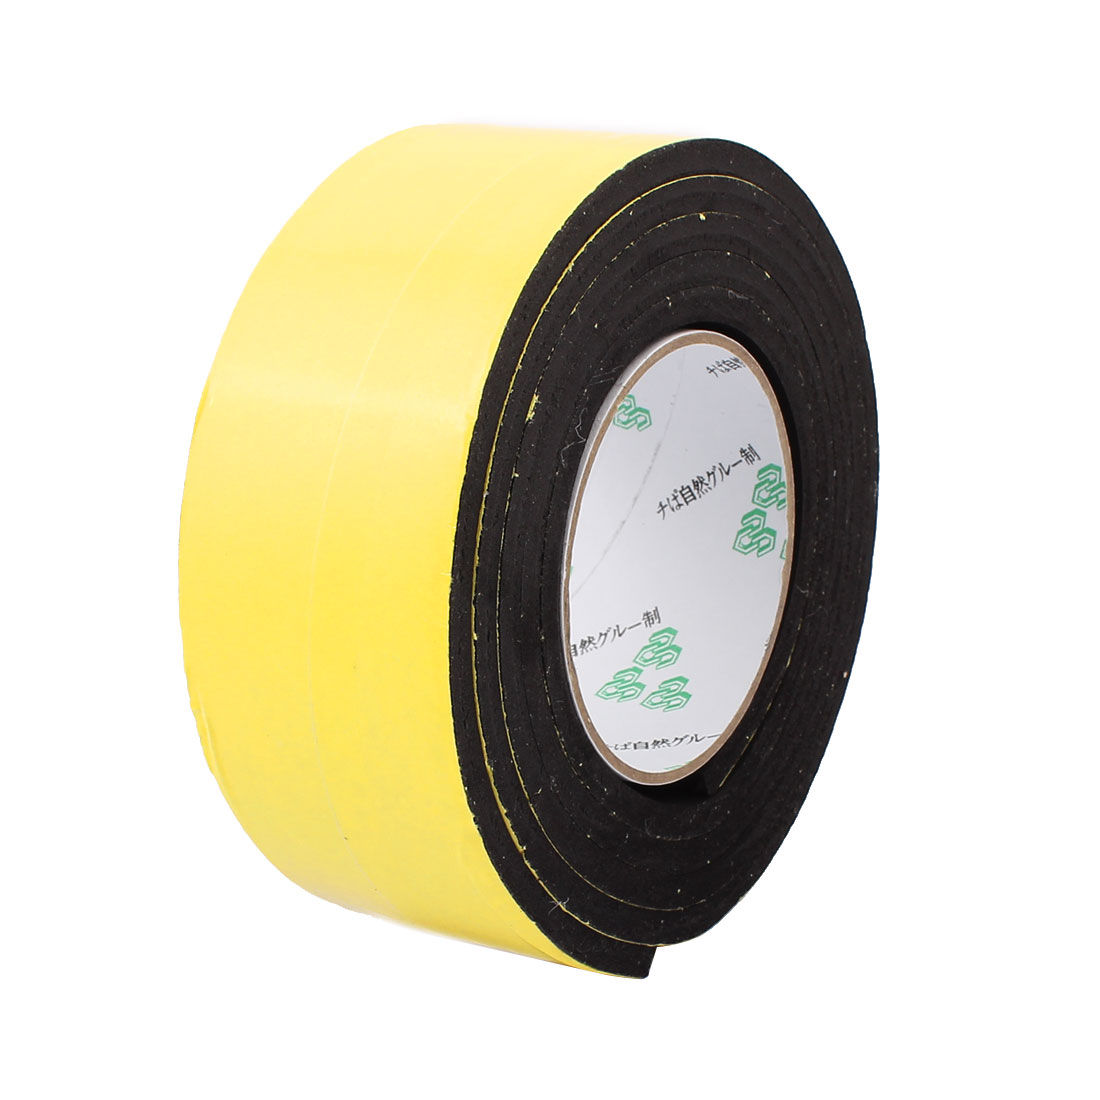 55mm x 6mm Single Sided Self Adhesive Shockproof Sponge Foam Tape 2M Length